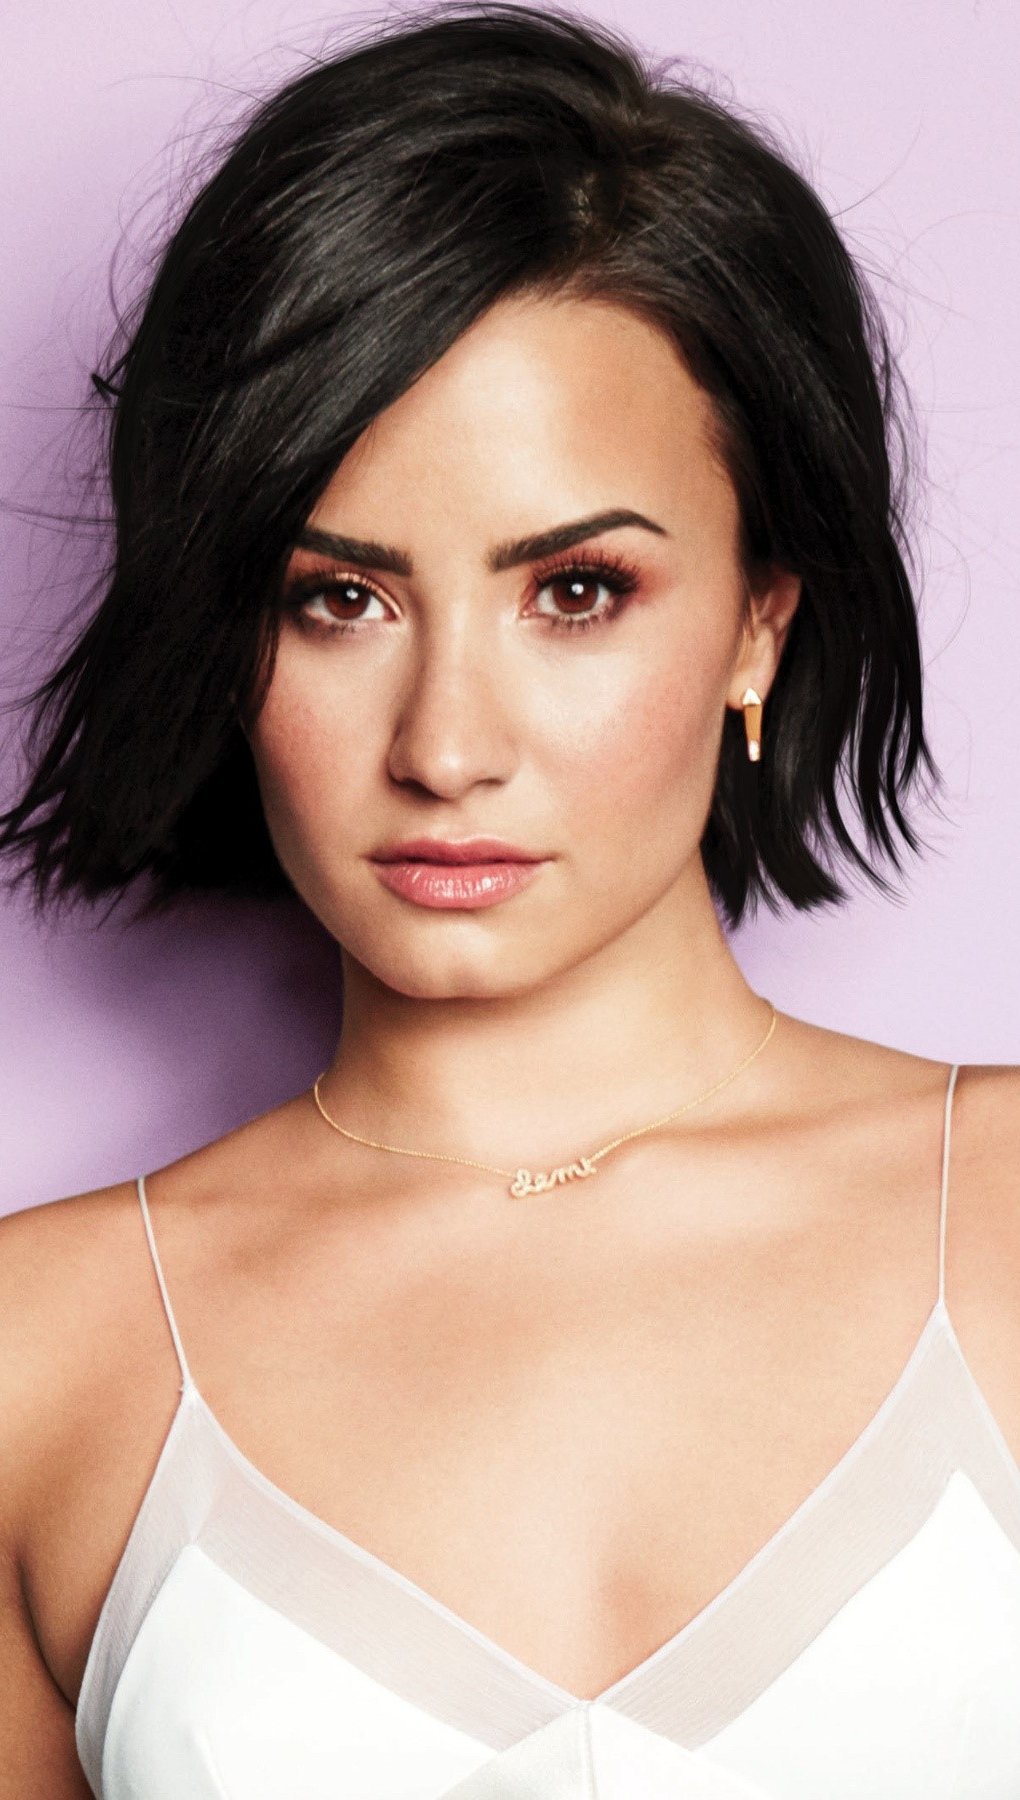 Wallpaper Demi Lovato is Cool for the summer Vertical